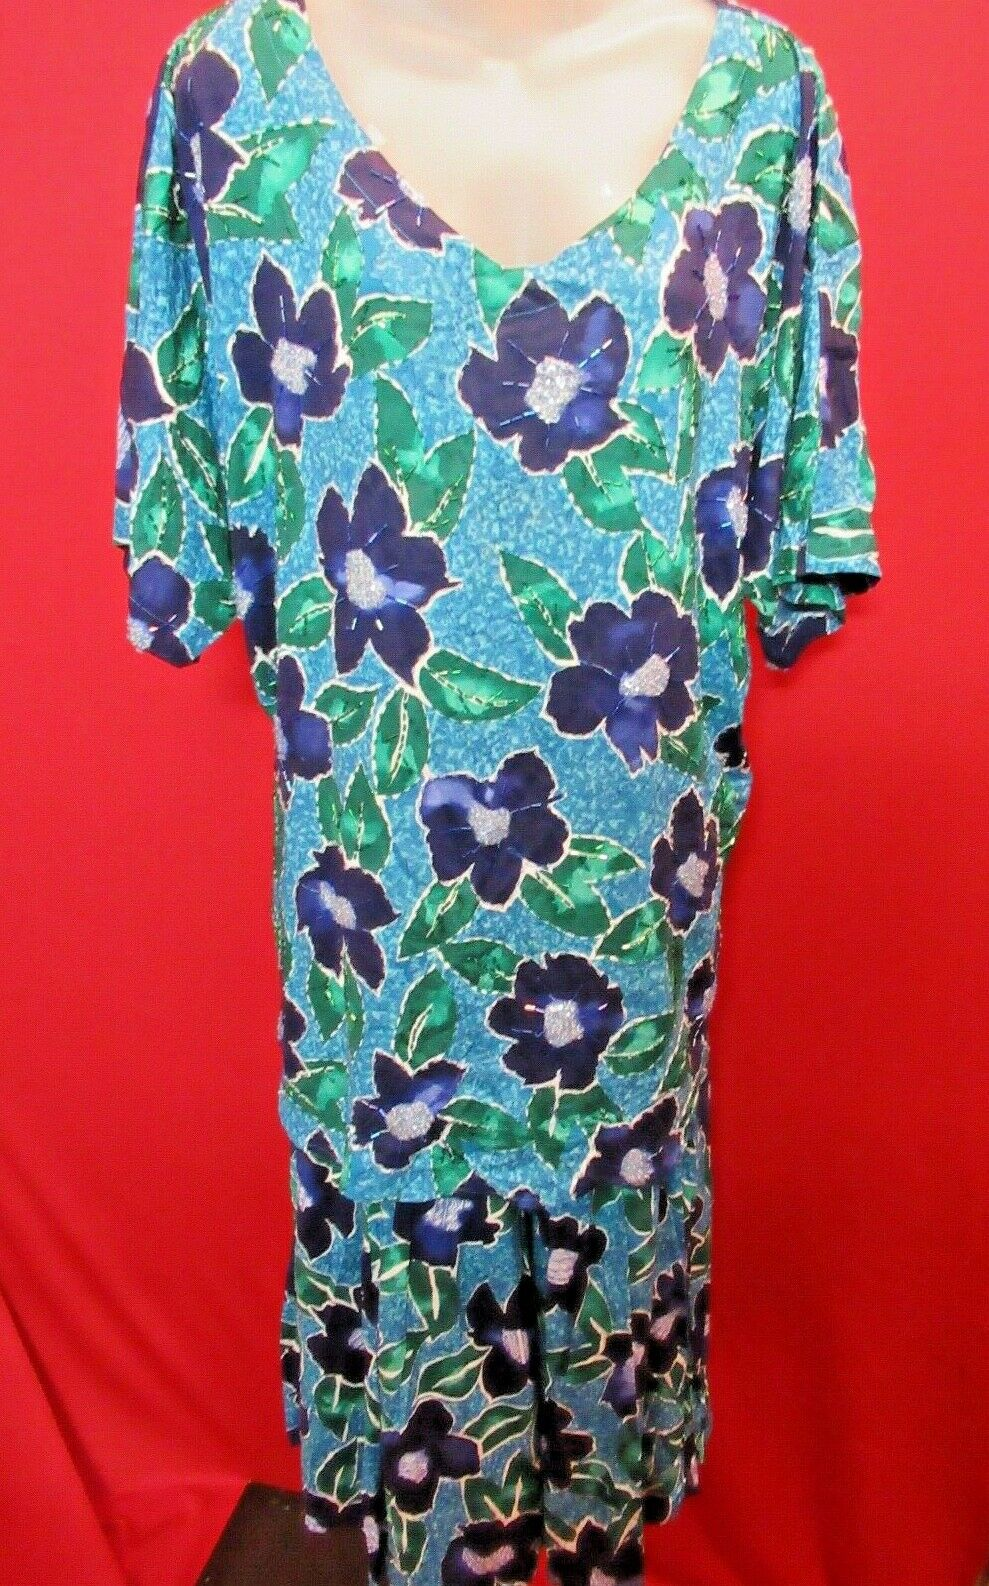 WE BE BOP Vintage Beaded Blau Floral Tunic oben Swing Rock Outfit Set Sz 2X